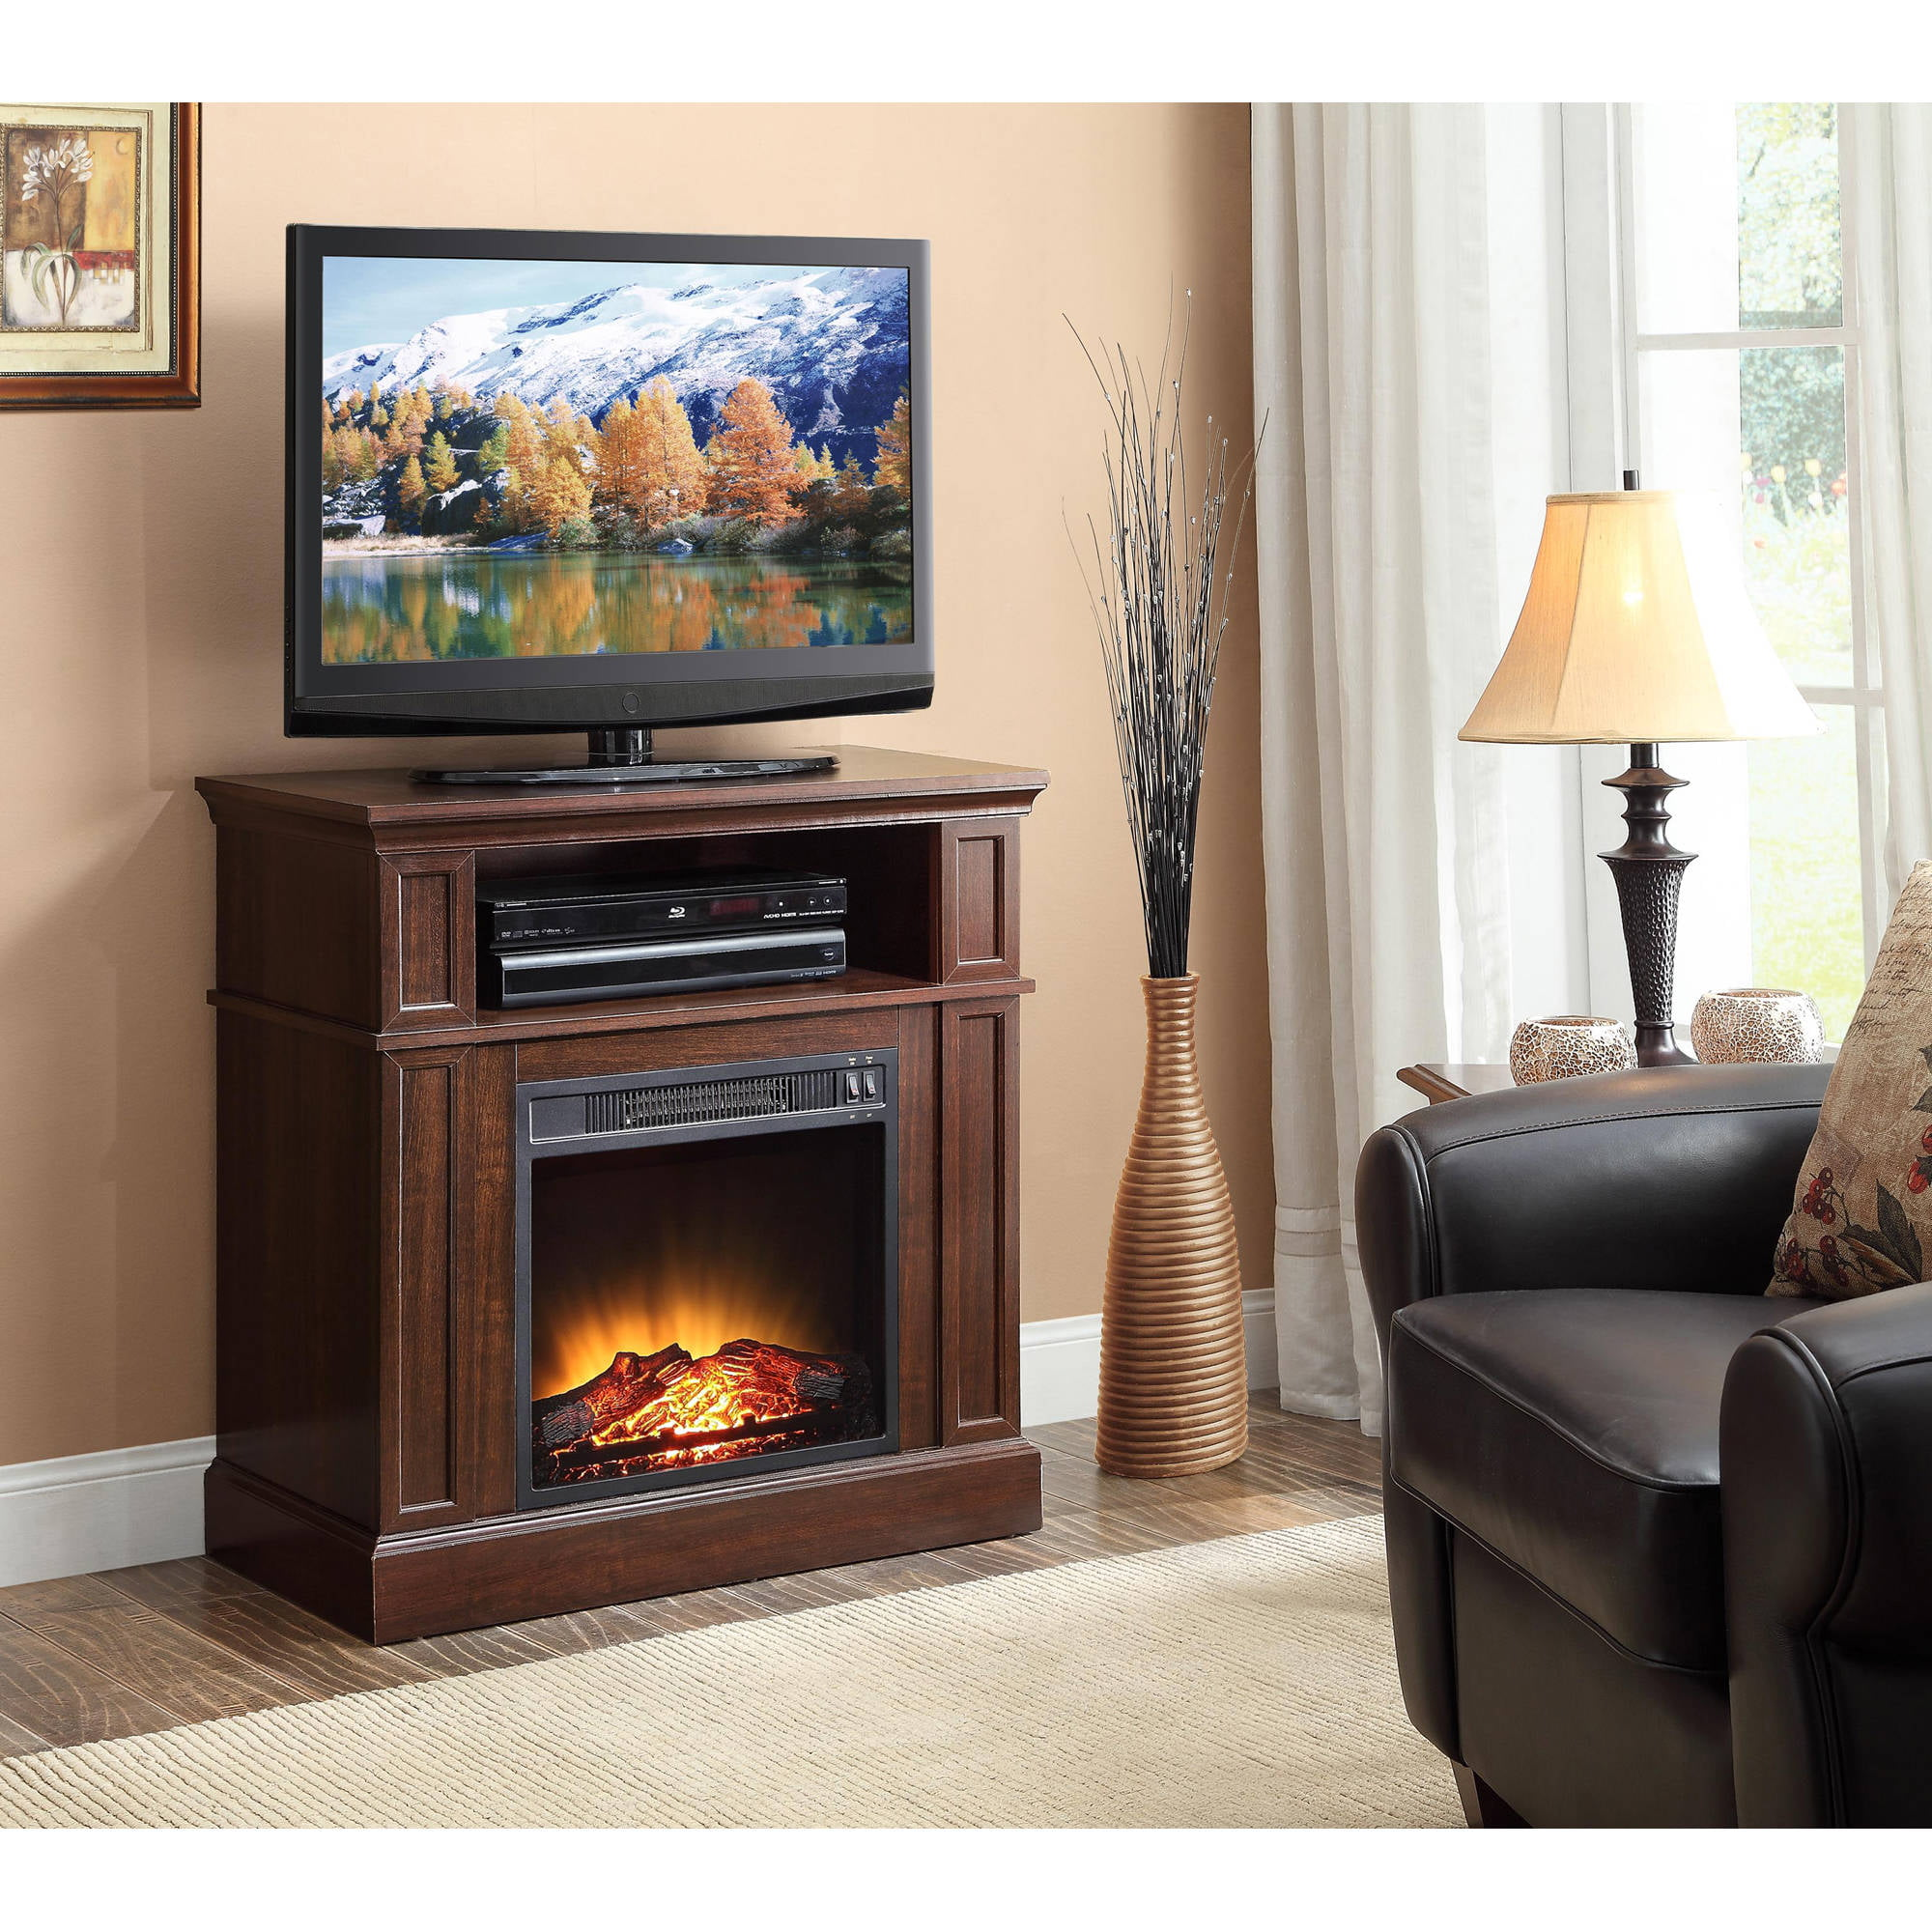 Whalen Industria Media Fireplace For Home Television Stand Fits Tvs